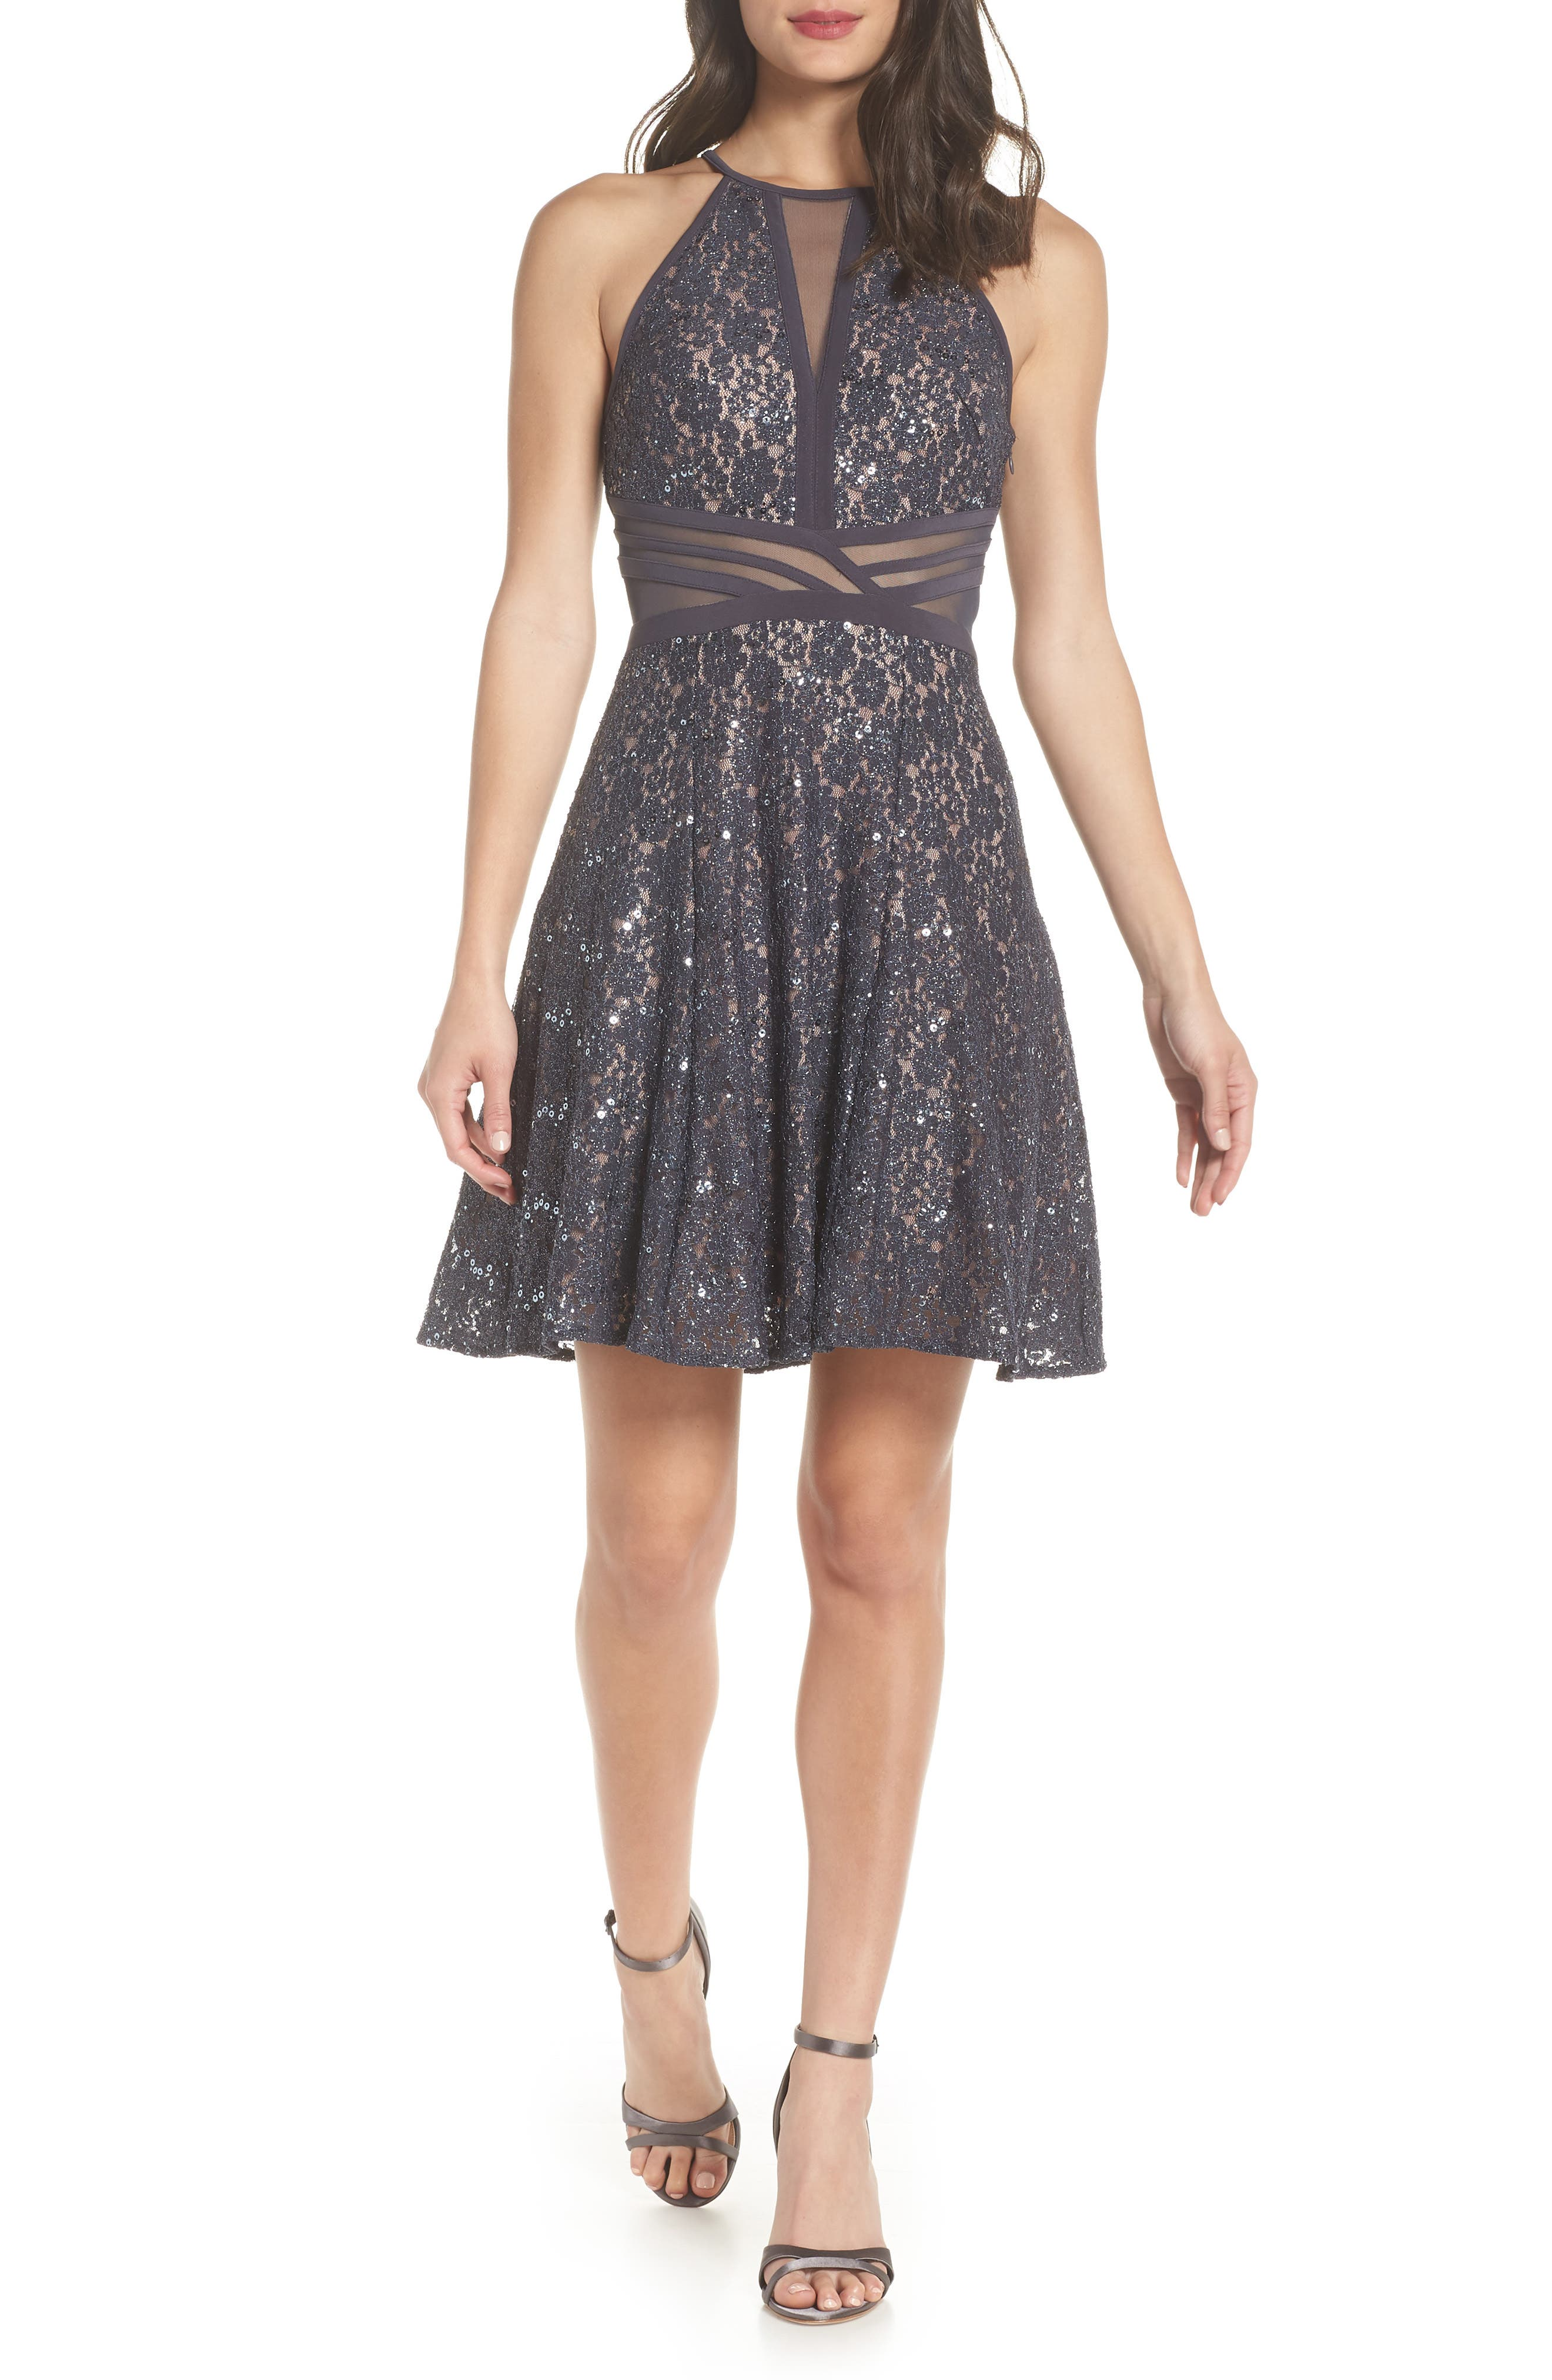 Morgan & Co. Sheer Inset Lace Fit & Flare Dress, /4 - Grey